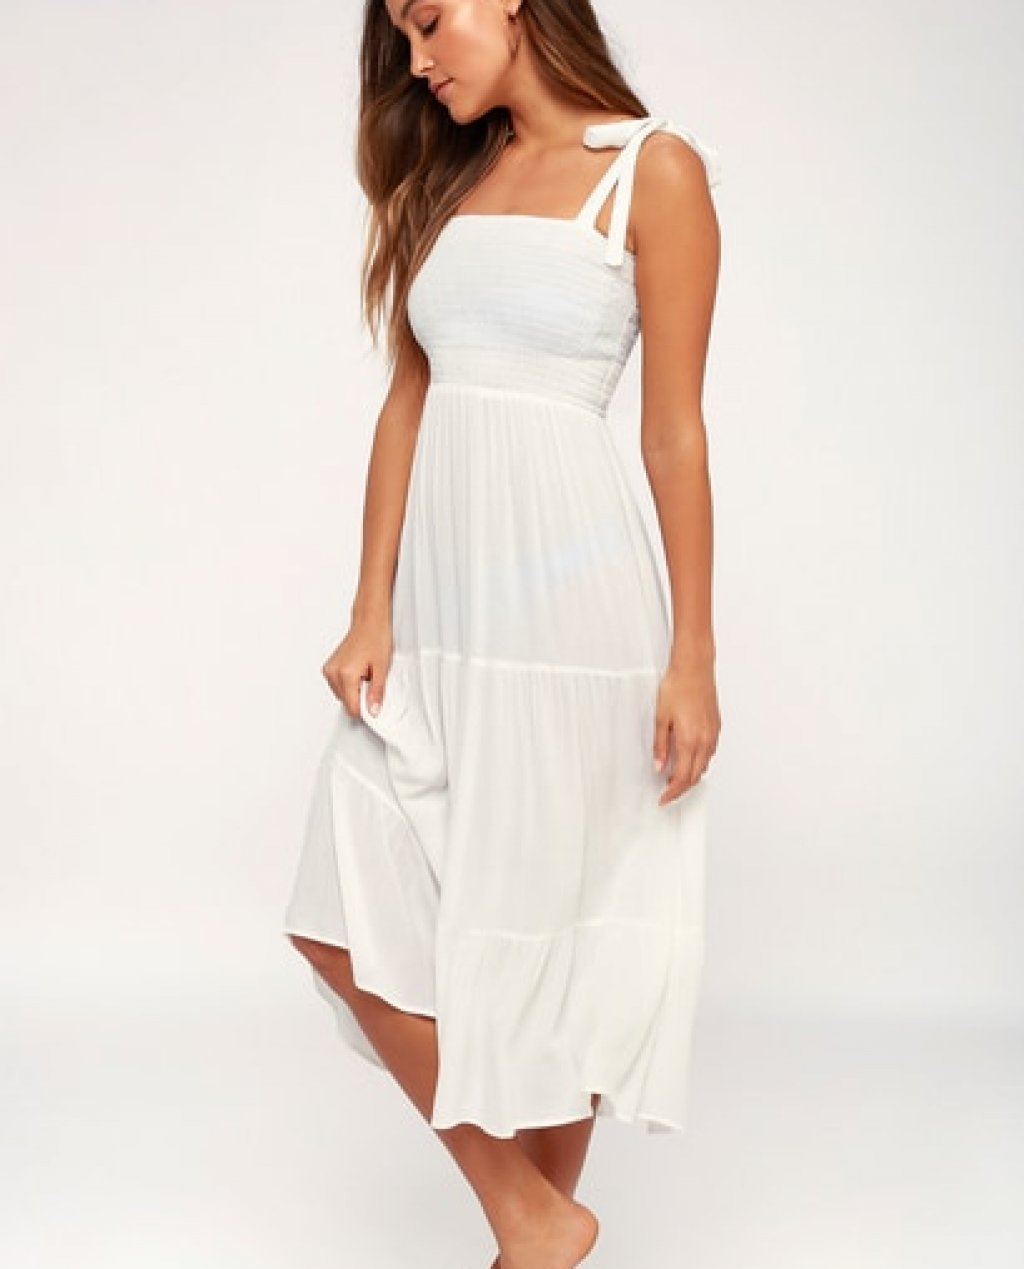 49a843ddf5 Leoni White Tie-Strap Smocked Swim Cover-Up